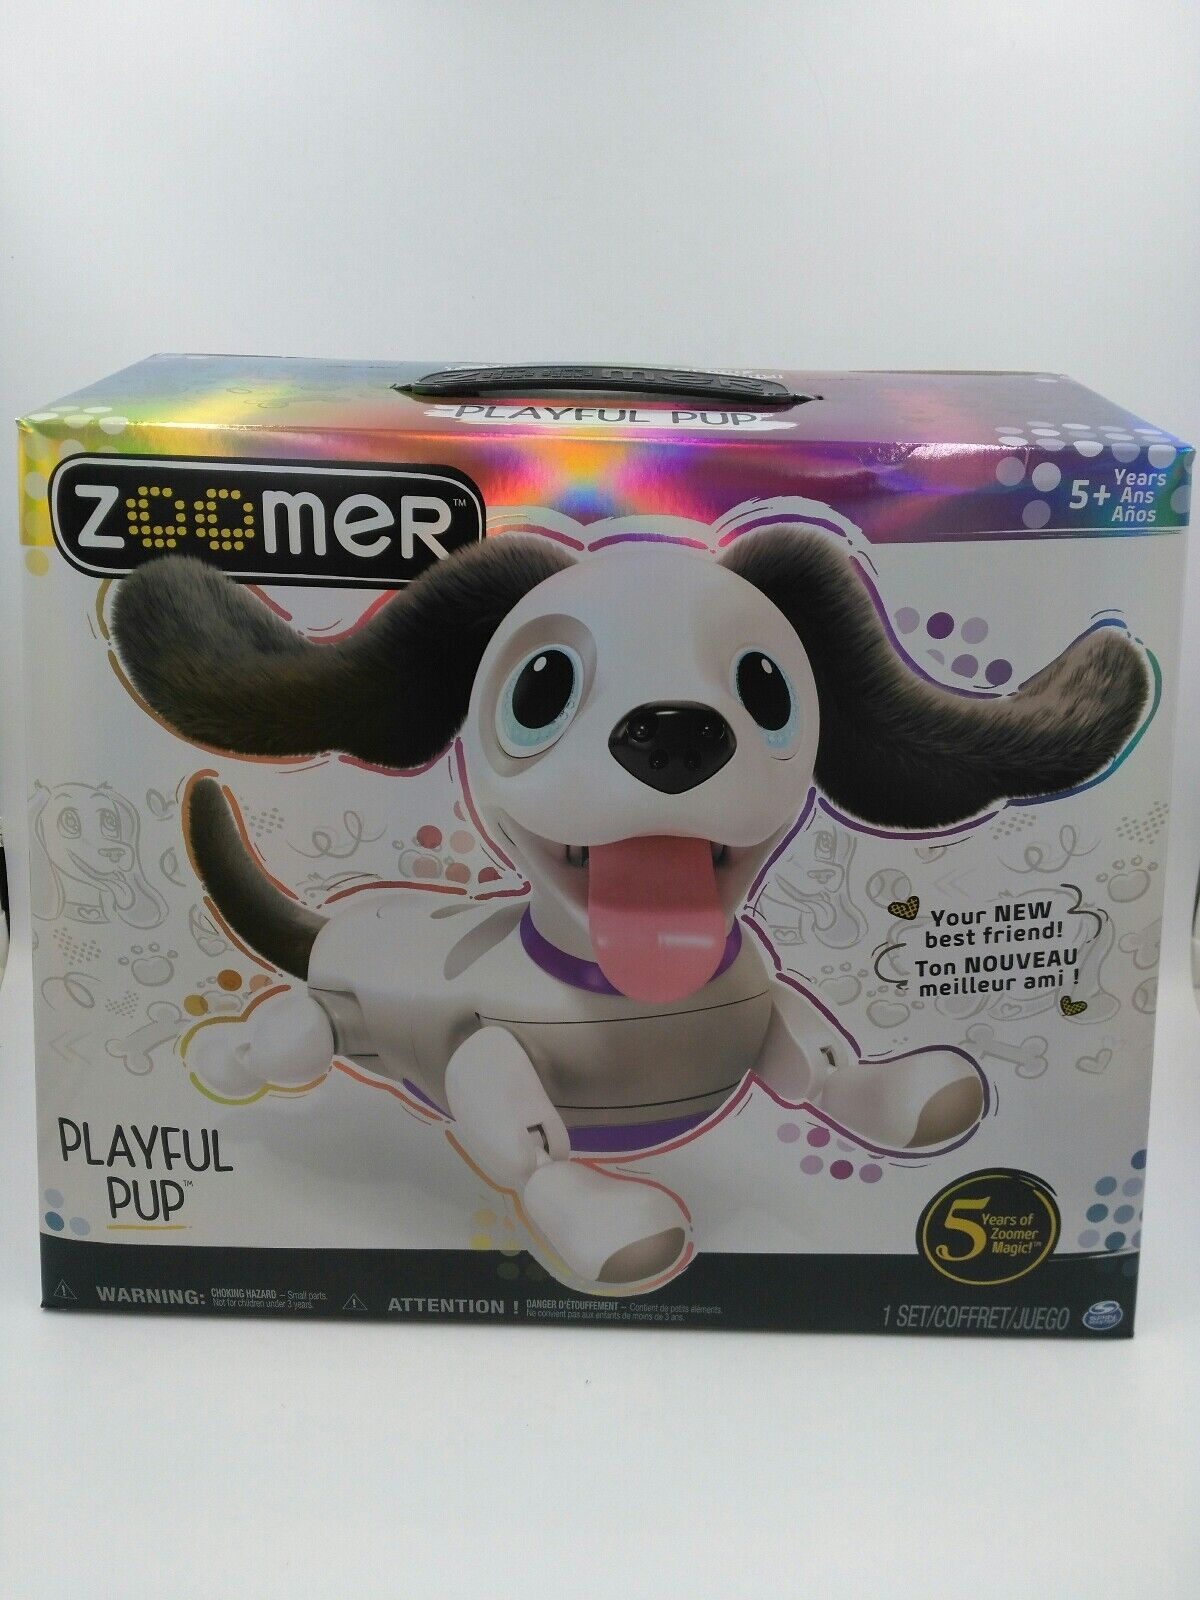 Zoomer Playful Pup, Responsive Robotic Dog with Voice Recognition & Realistic